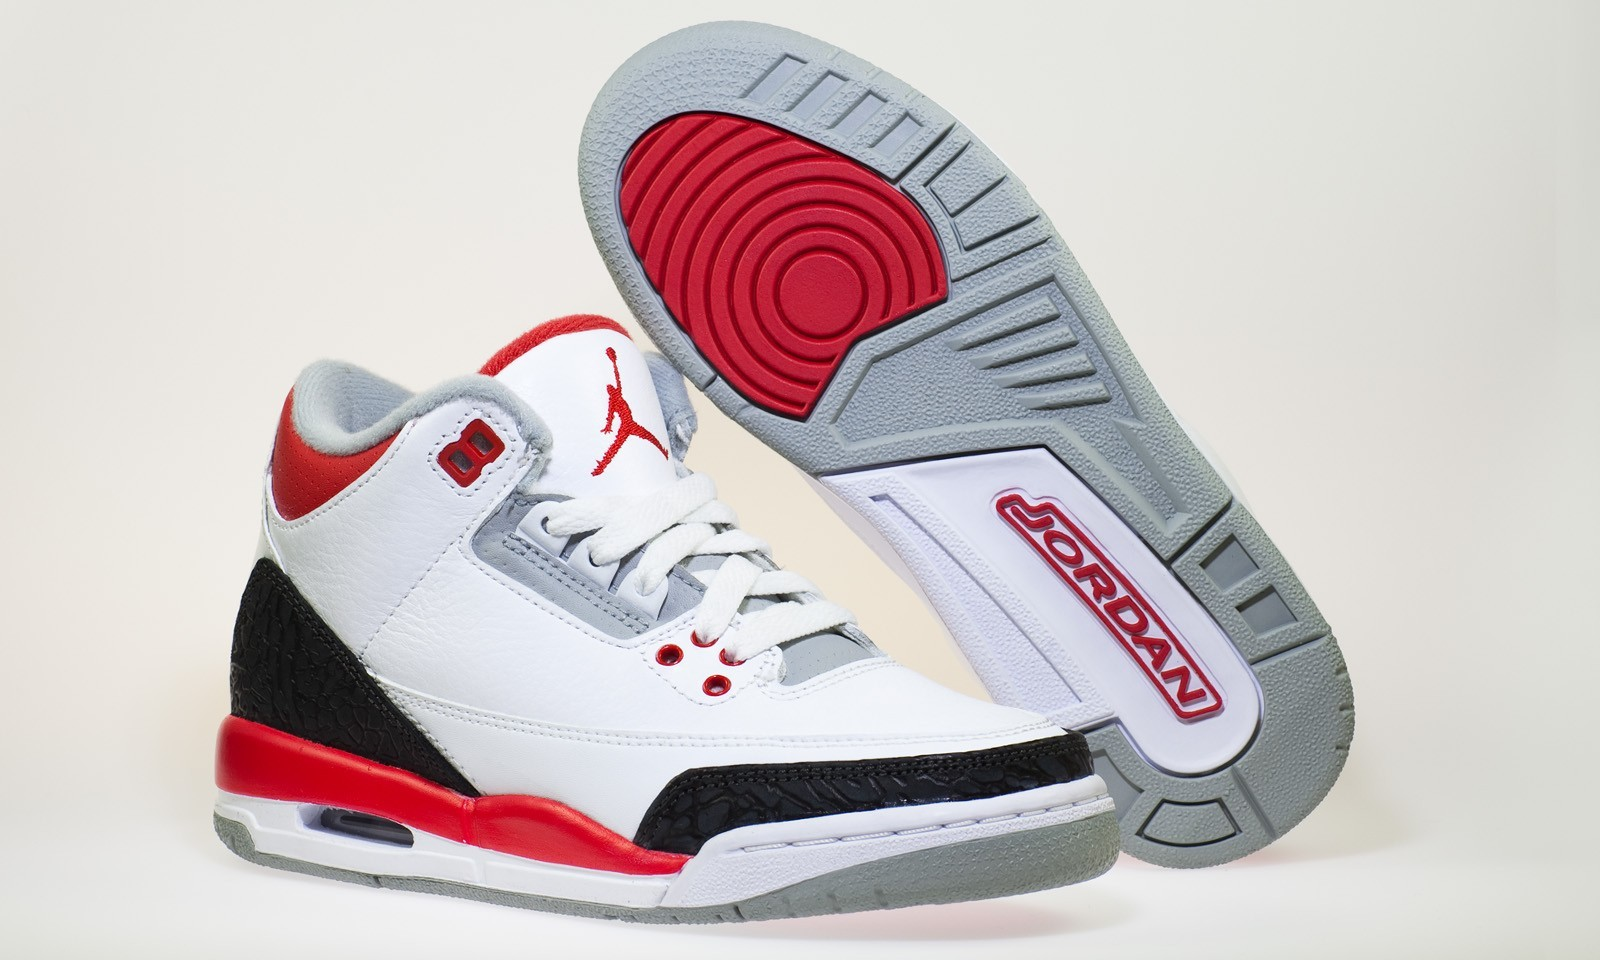 Air Jordan Retro 3(III) White Fire Red Neutral Grey Black 398614-120 Mens Basketball Shoes